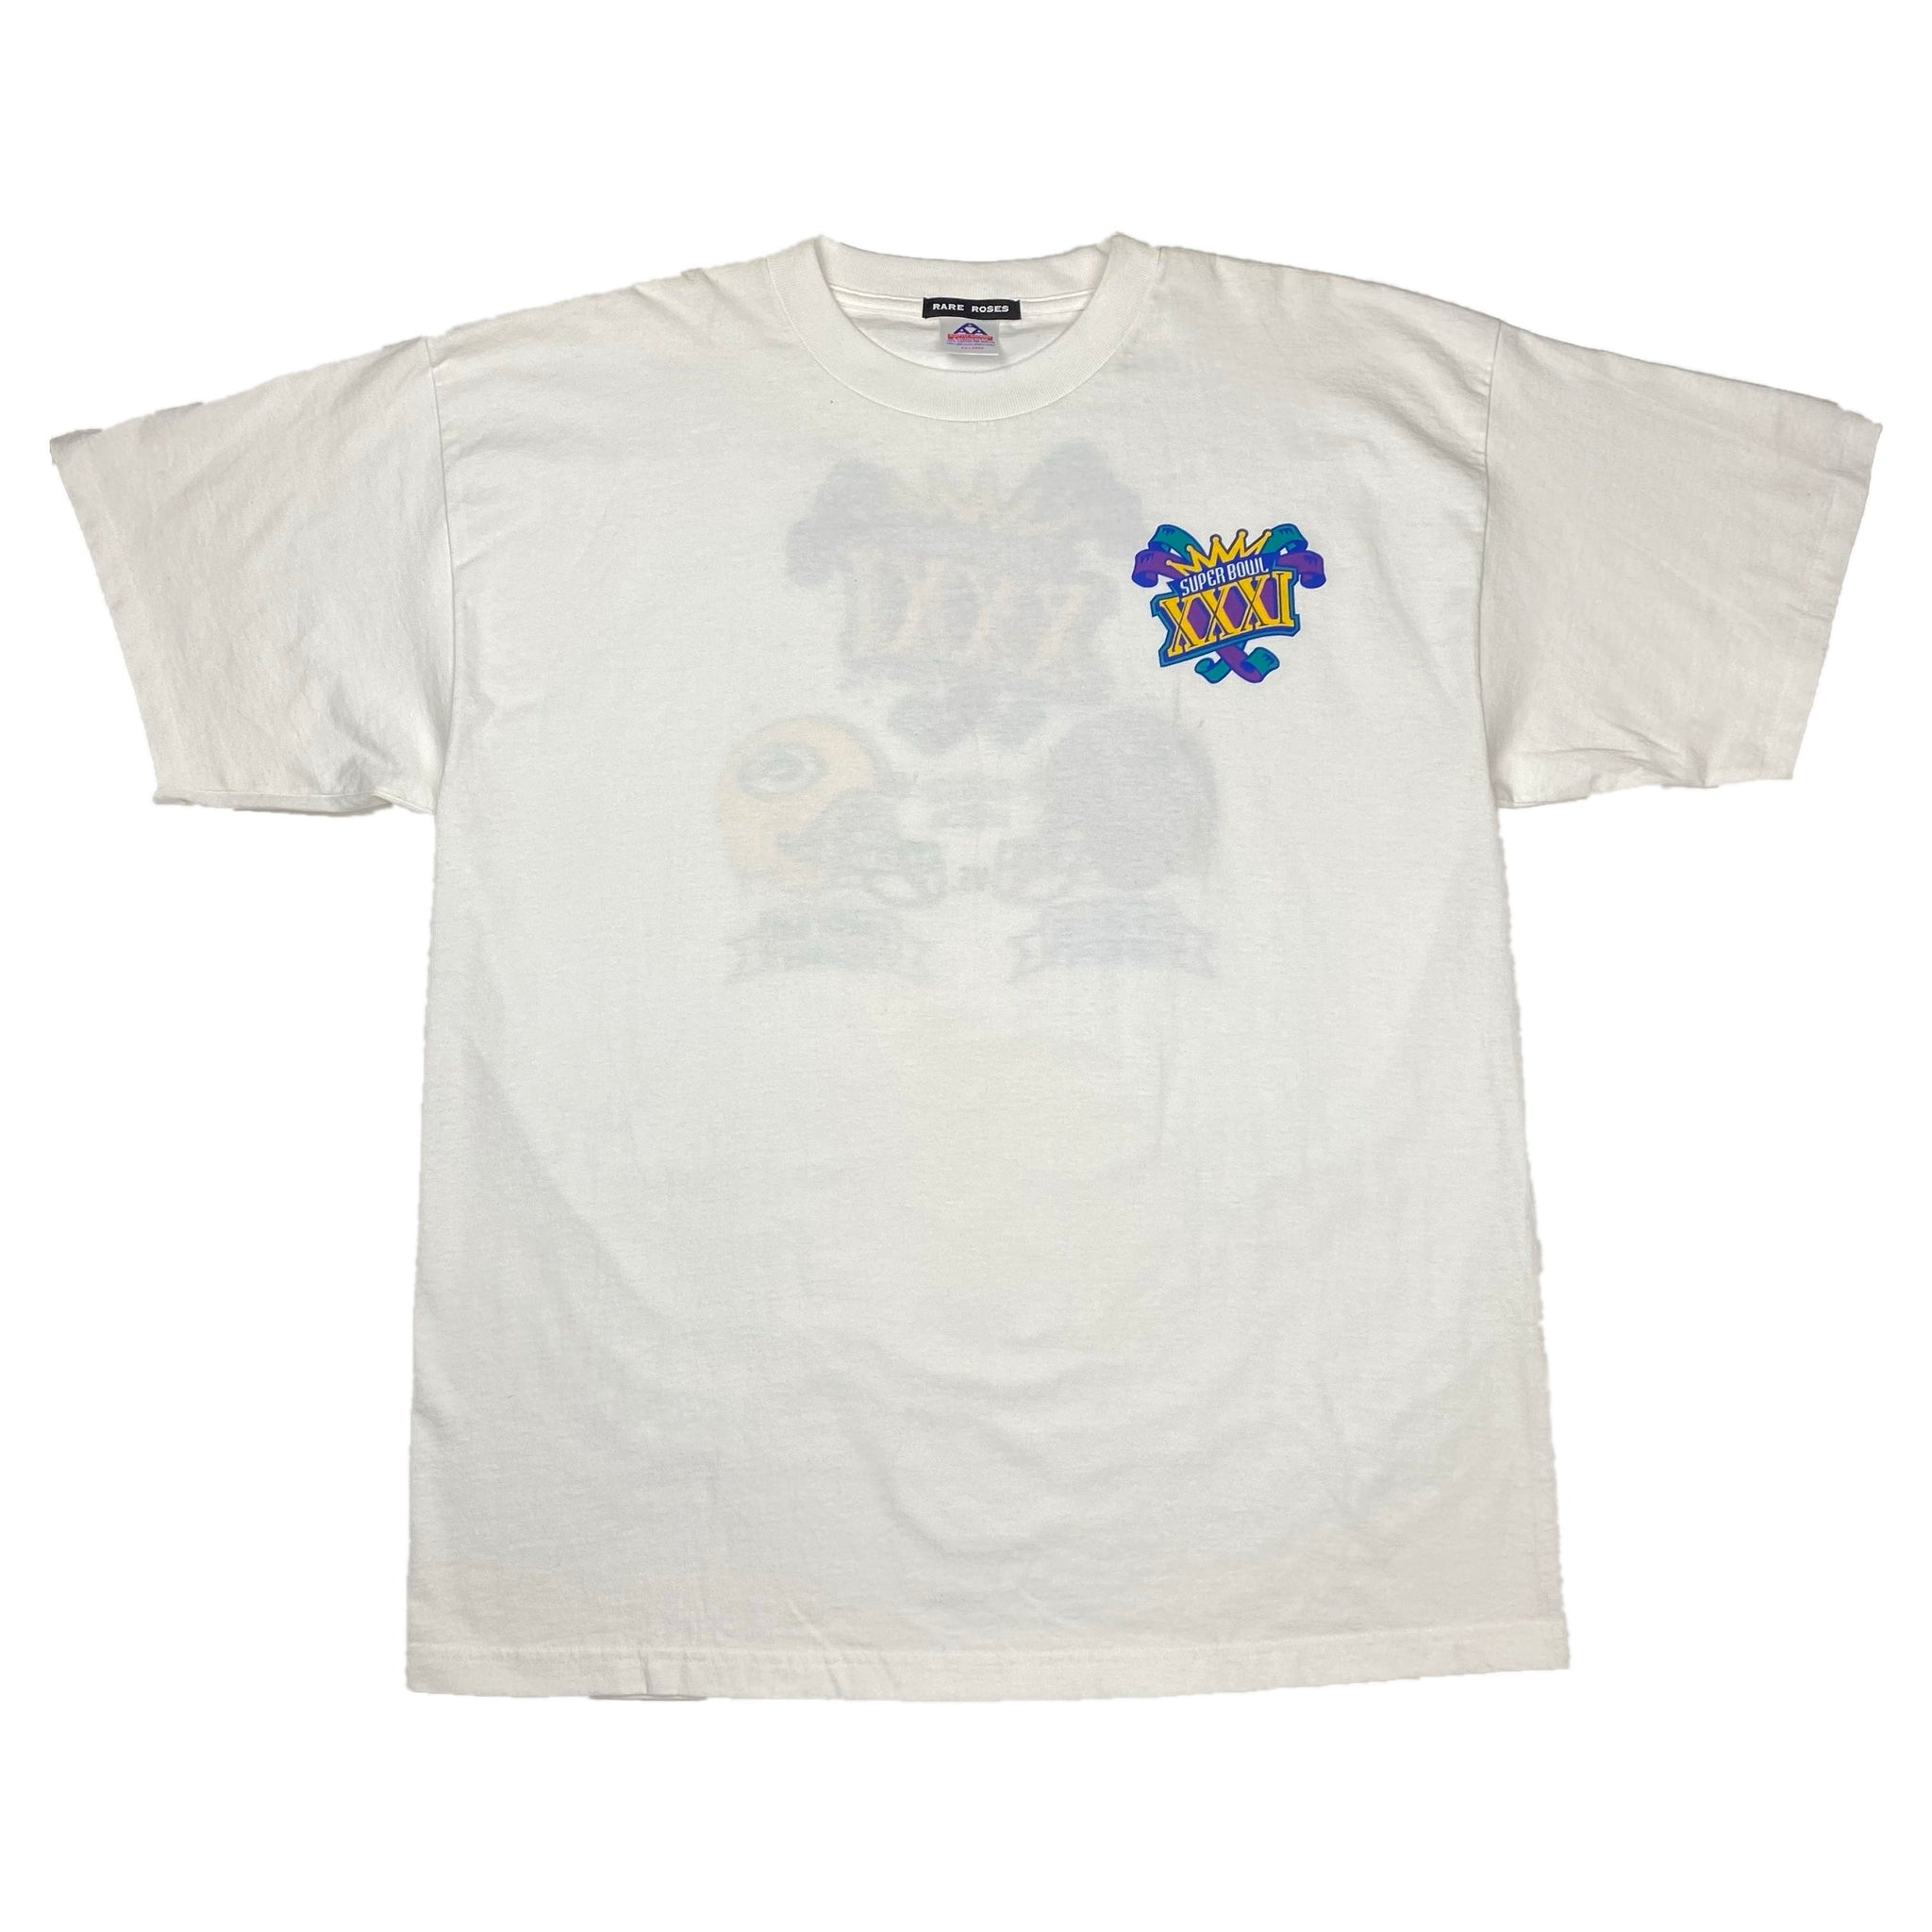 1997 Super Dome Super Bowl Tee